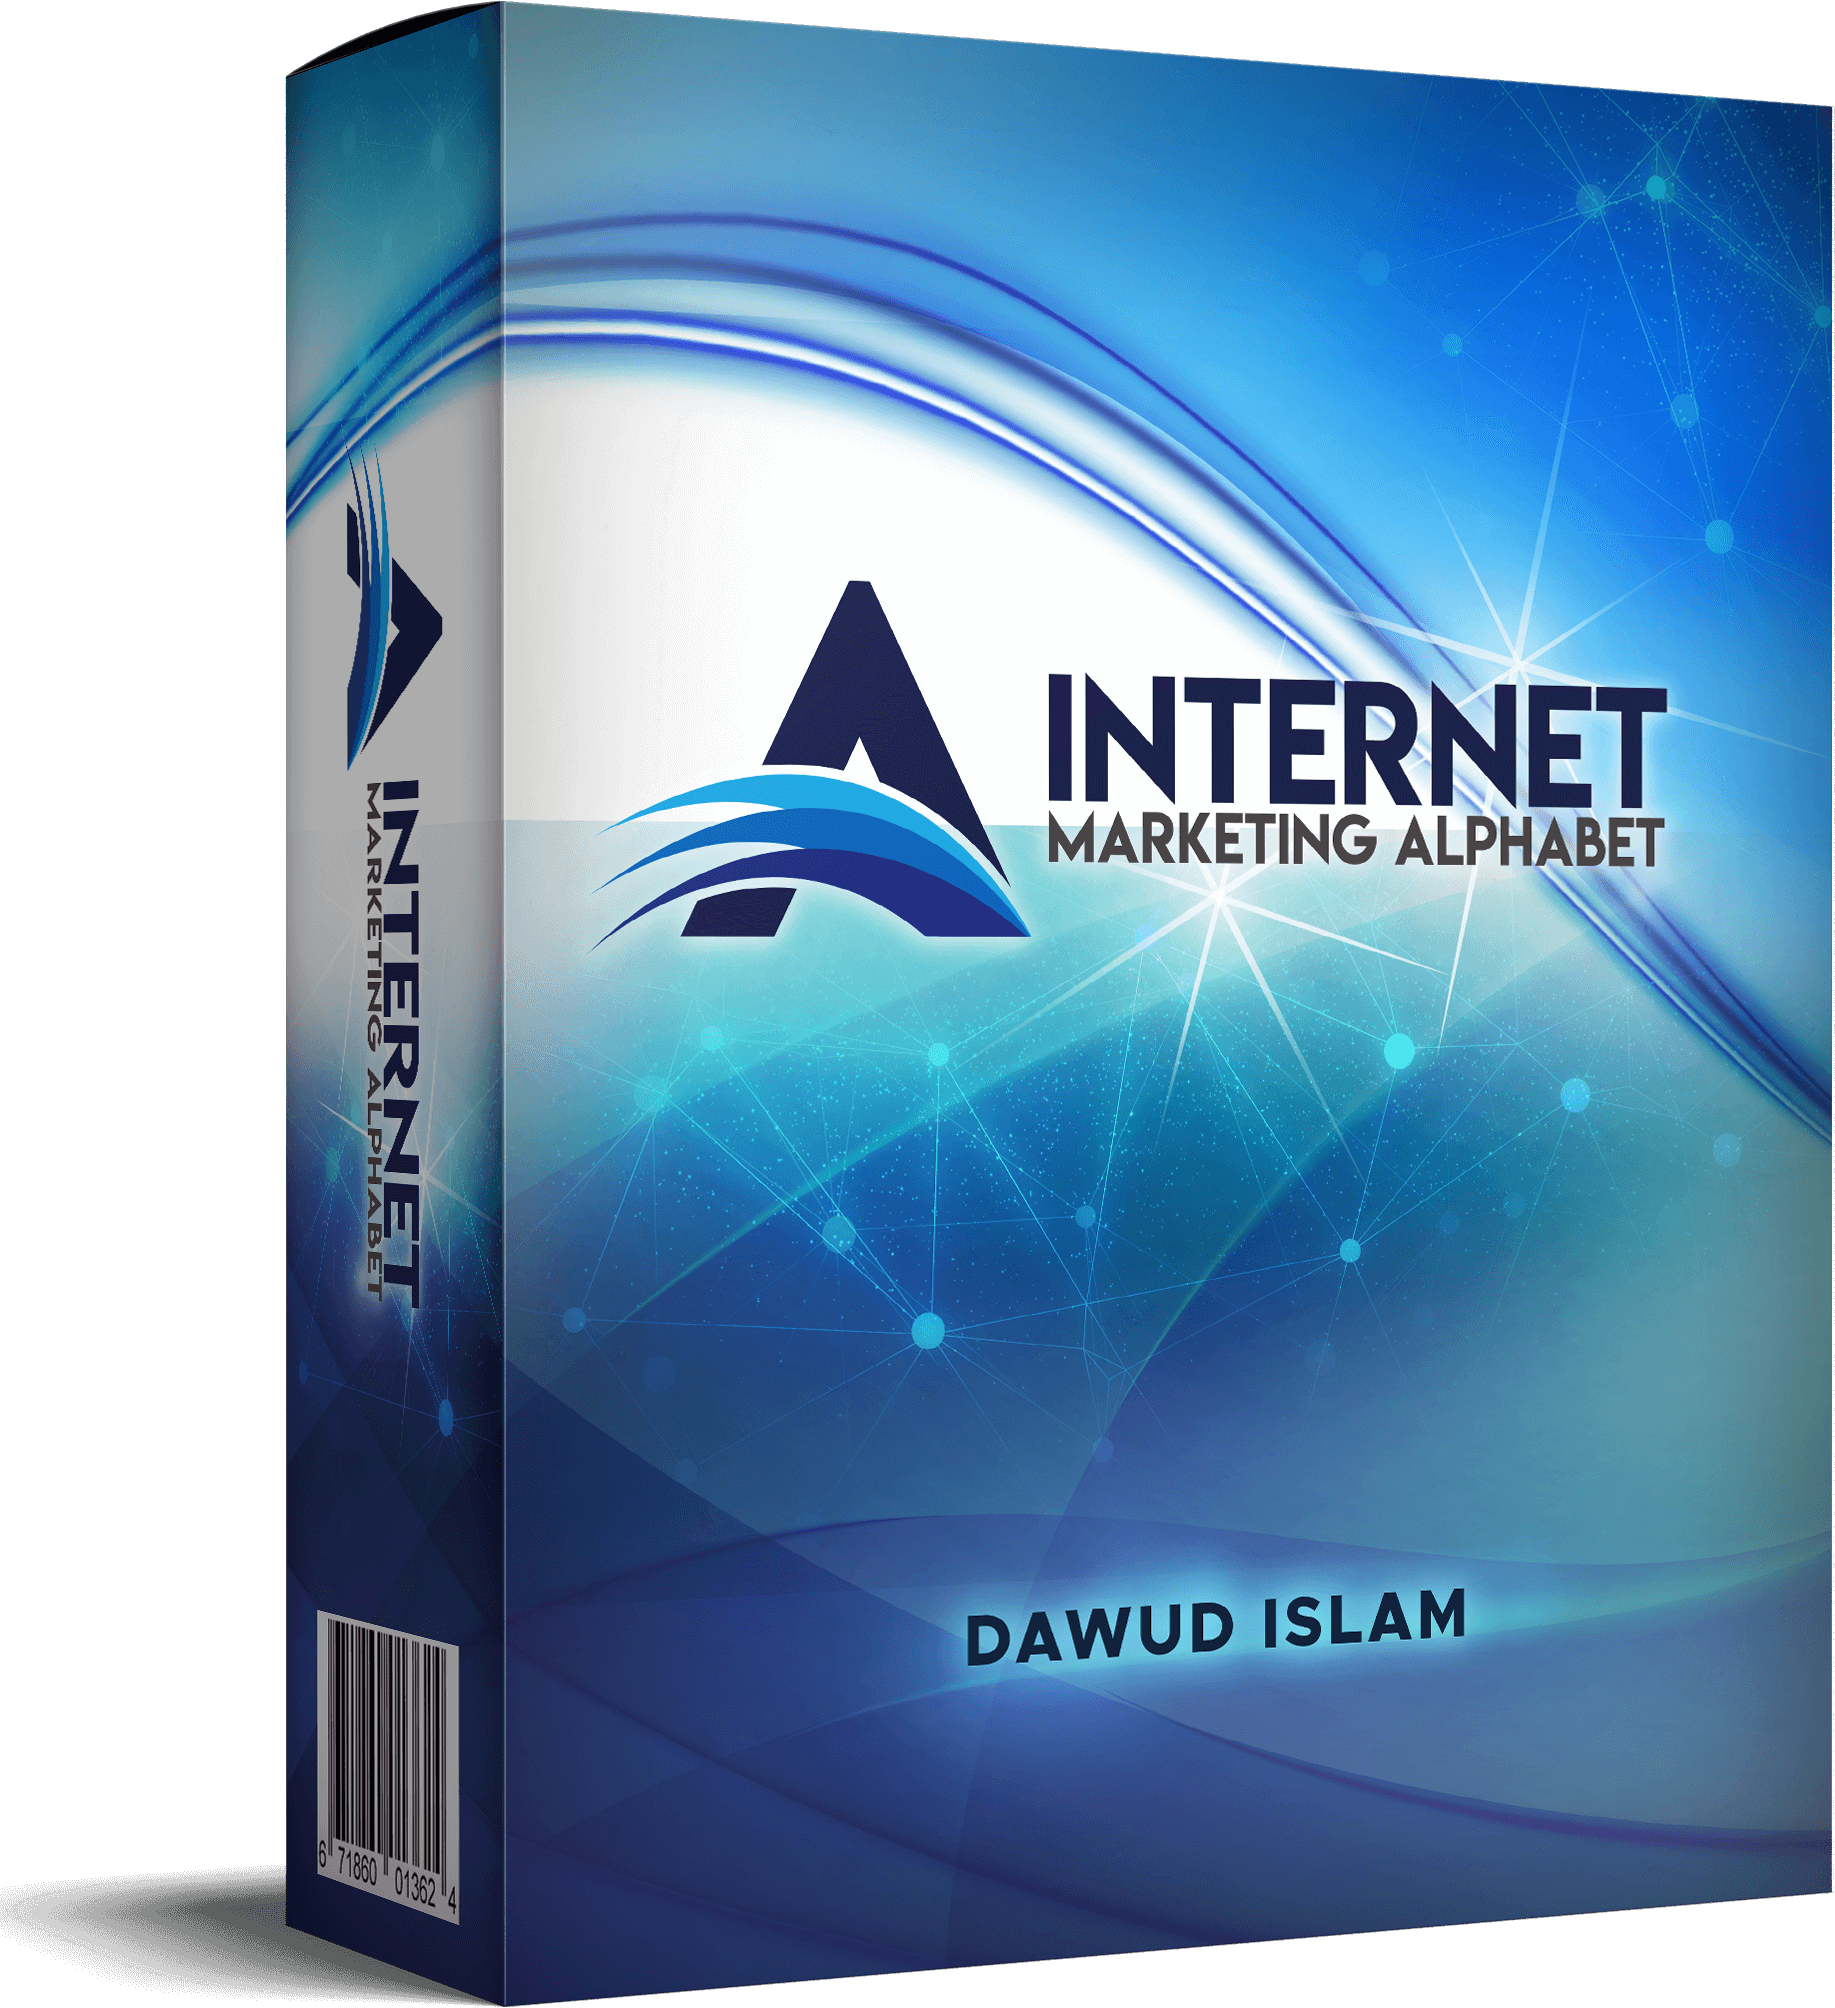 internet marketing alphabet review box